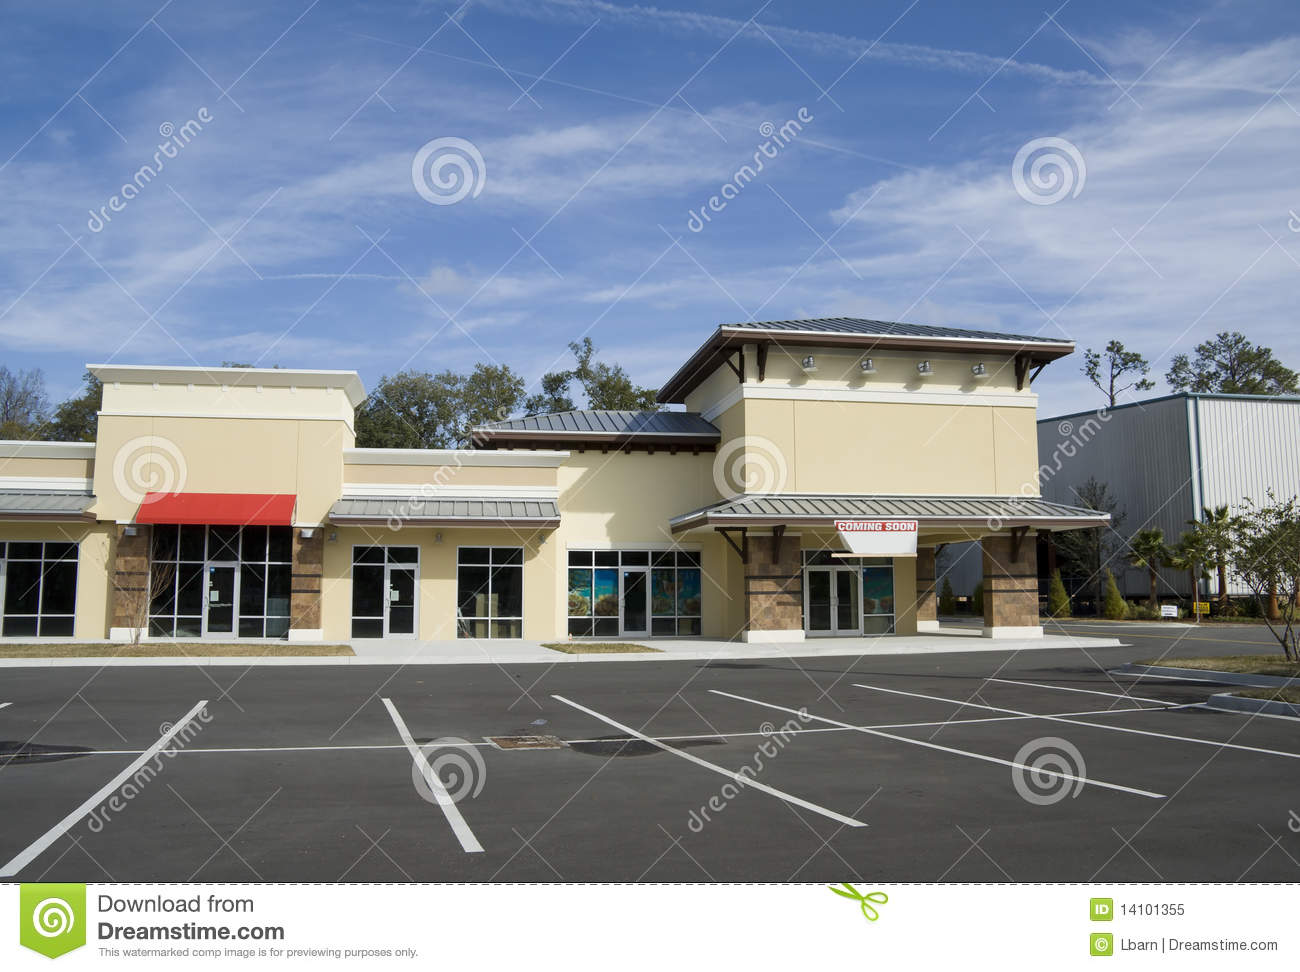 Very much design a strip mall